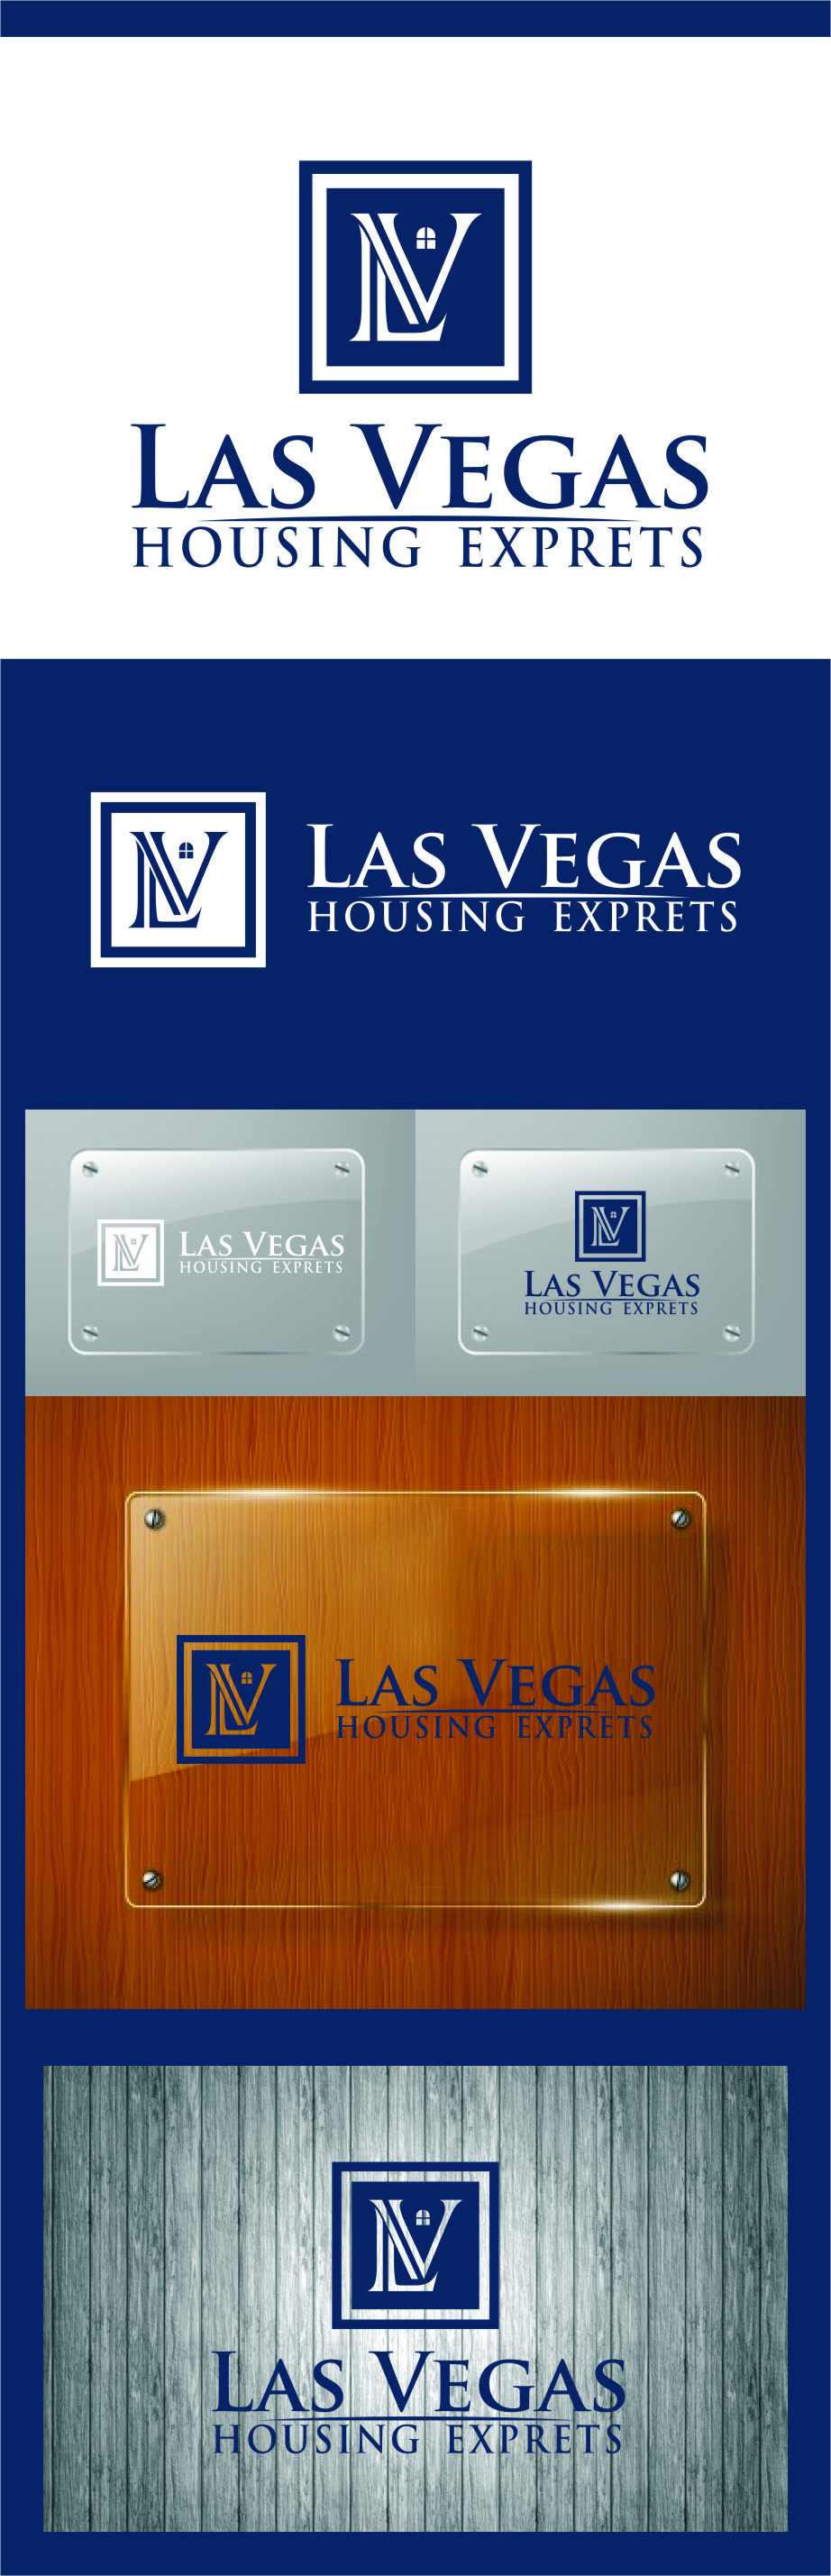 Logo Design by Ngepet_art - Entry No. 99 in the Logo Design Contest Las Vegas Housing Experts Logo Design.